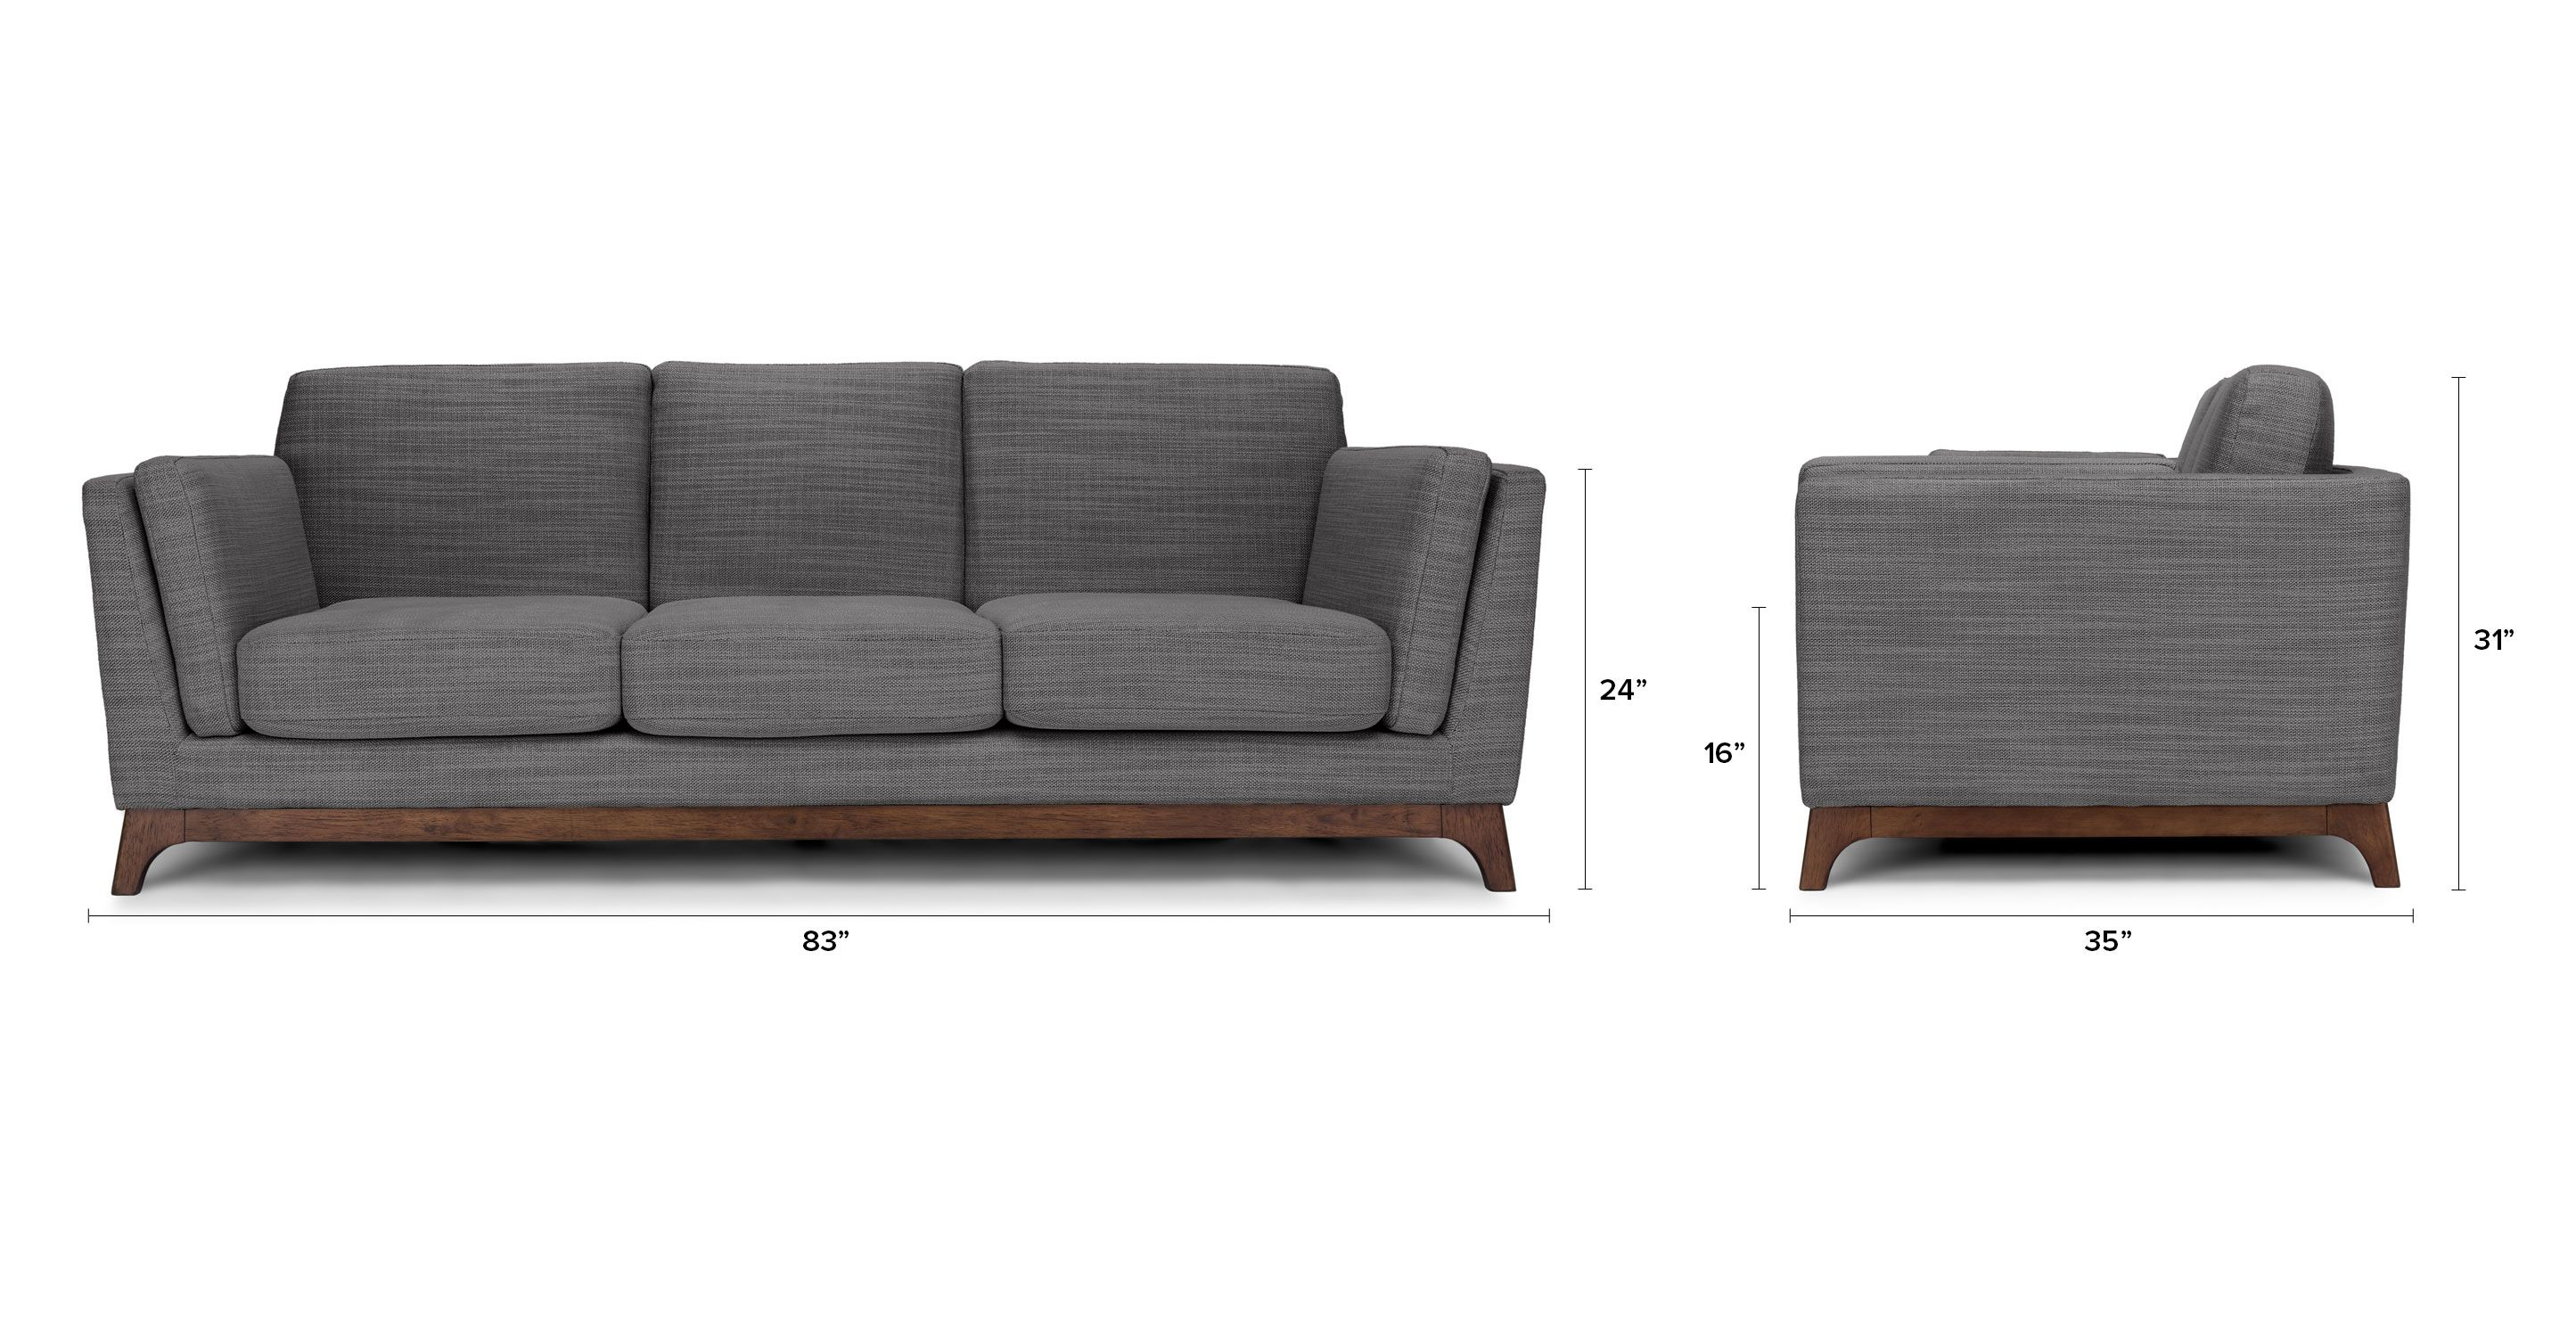 Modern Furniture Hawaii gray sofa - 3 seater with solid wood legs | article ceni modern